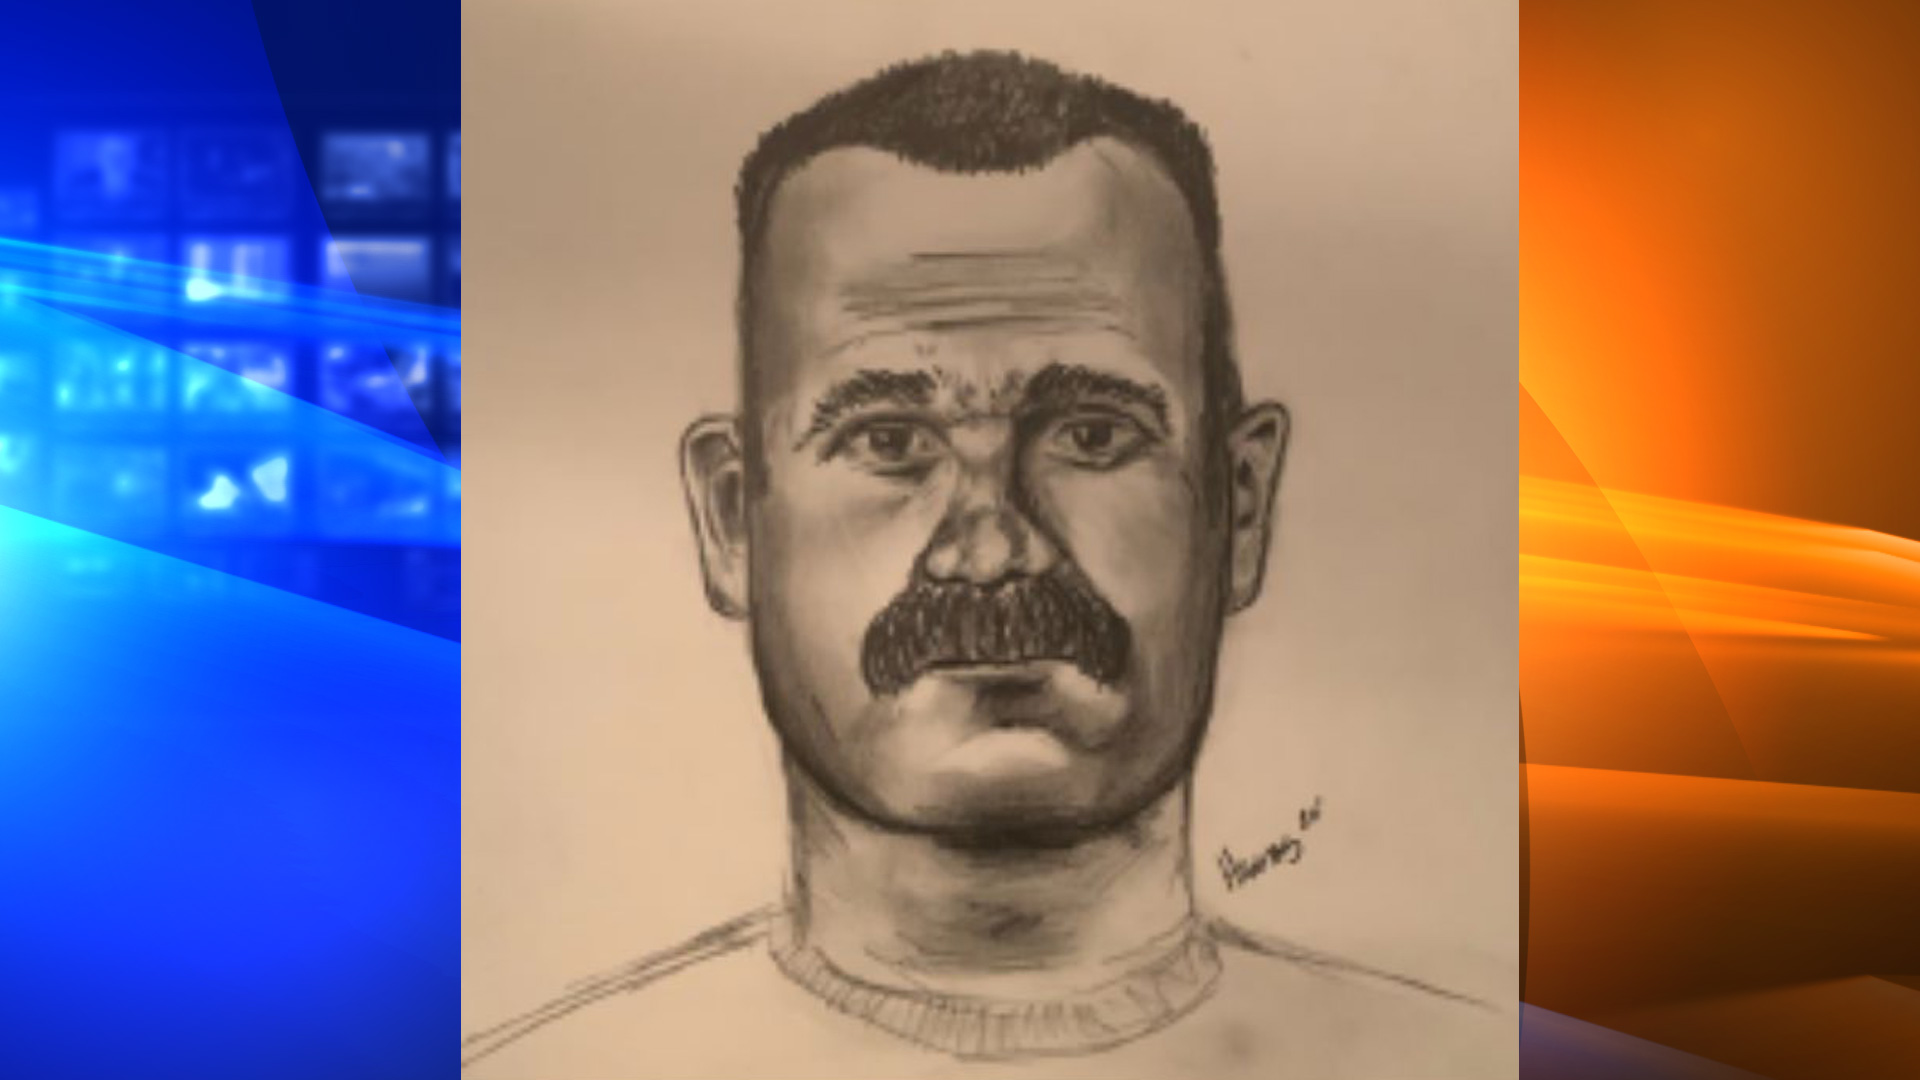 OCSD released an image of a man on Nov. 27, 2020, who is accused of pointing a gun at a boy in San Clemente.